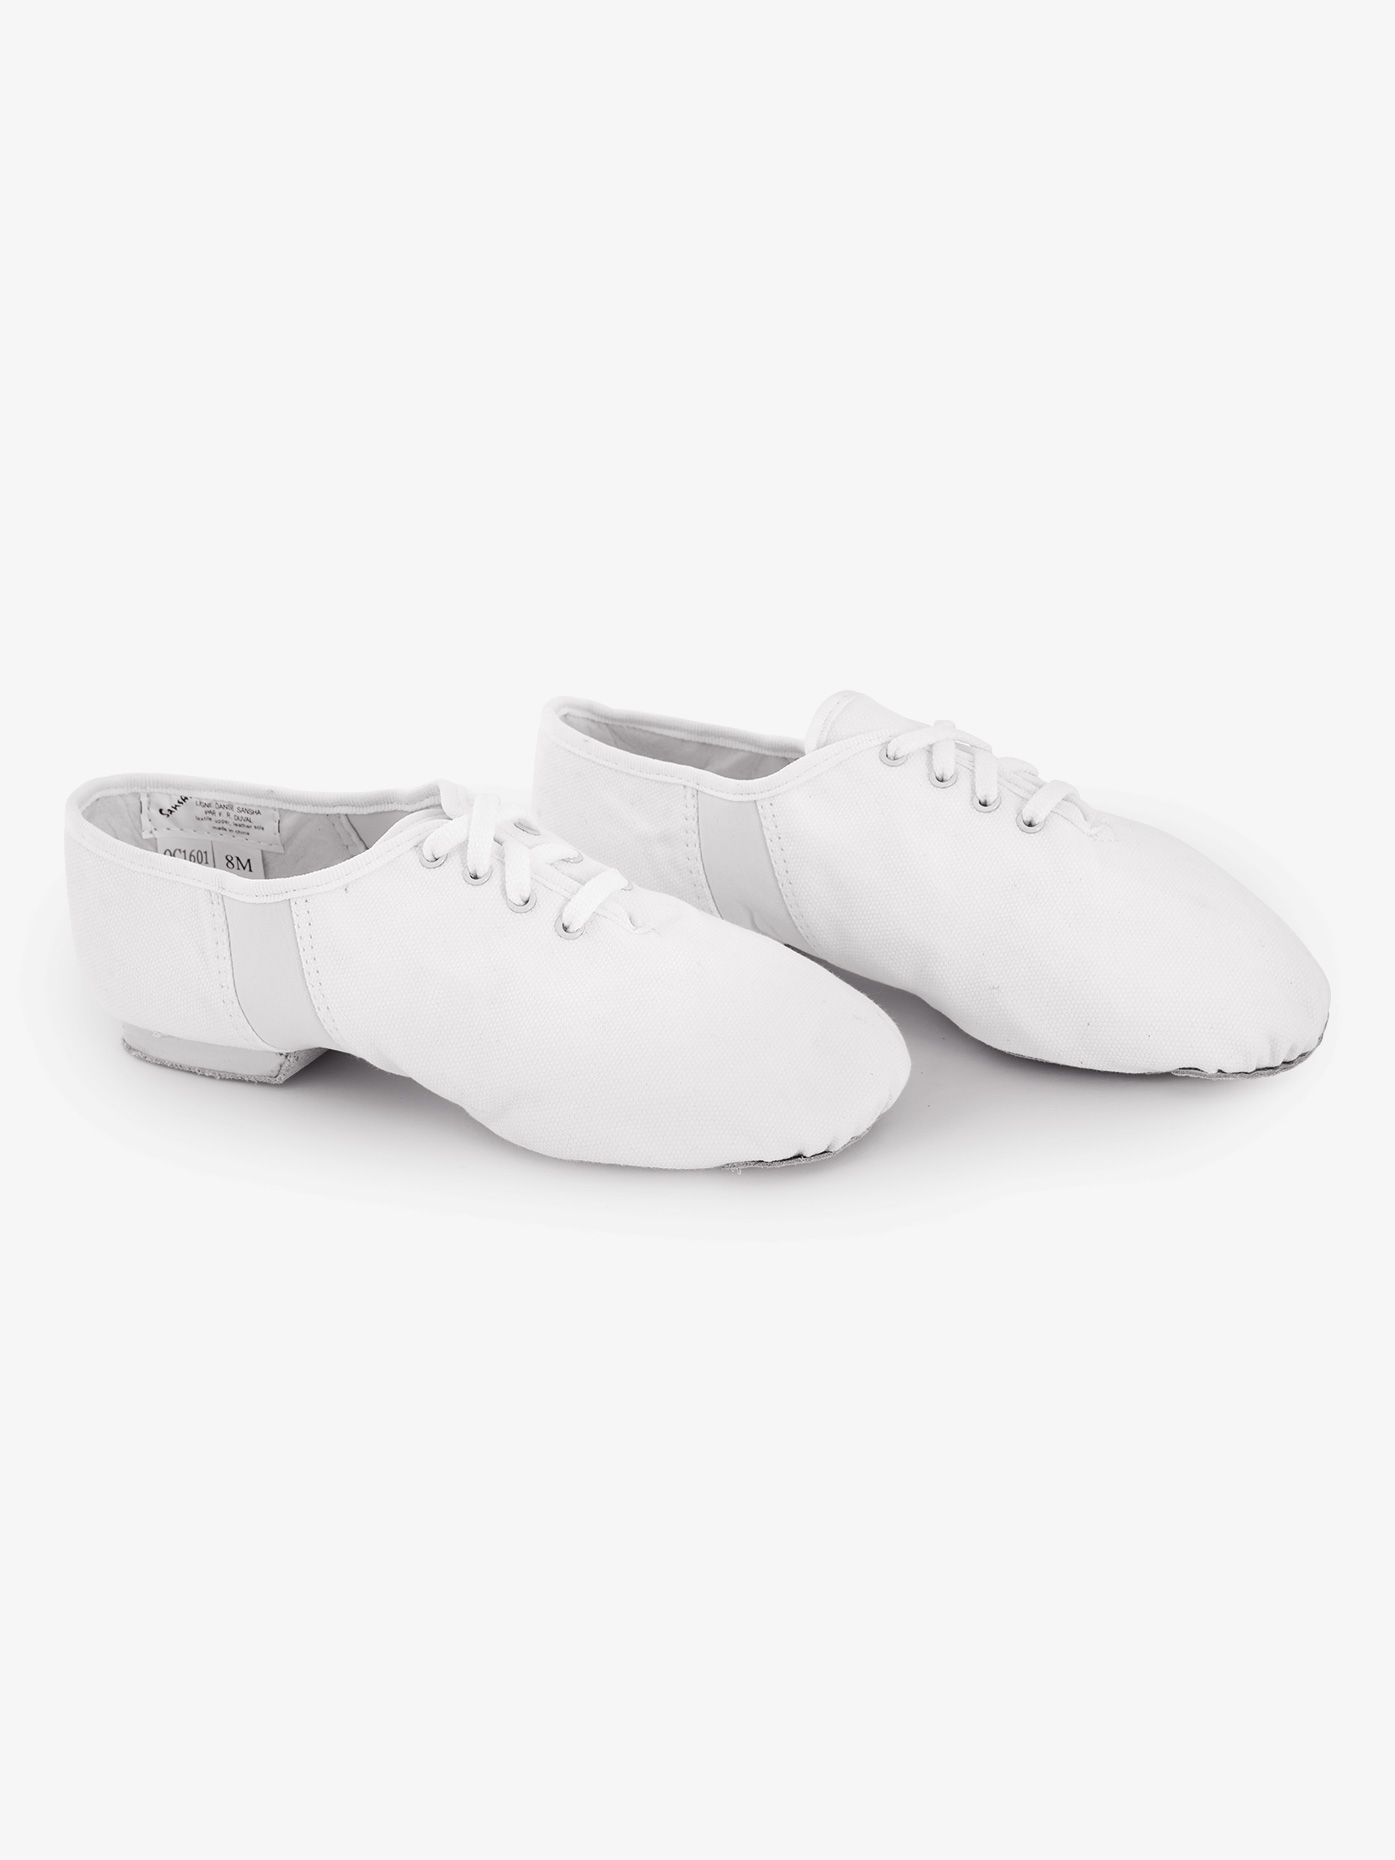 Sansha Adult Canvas/Neoprene Tivoli Jazz Shoes JS3